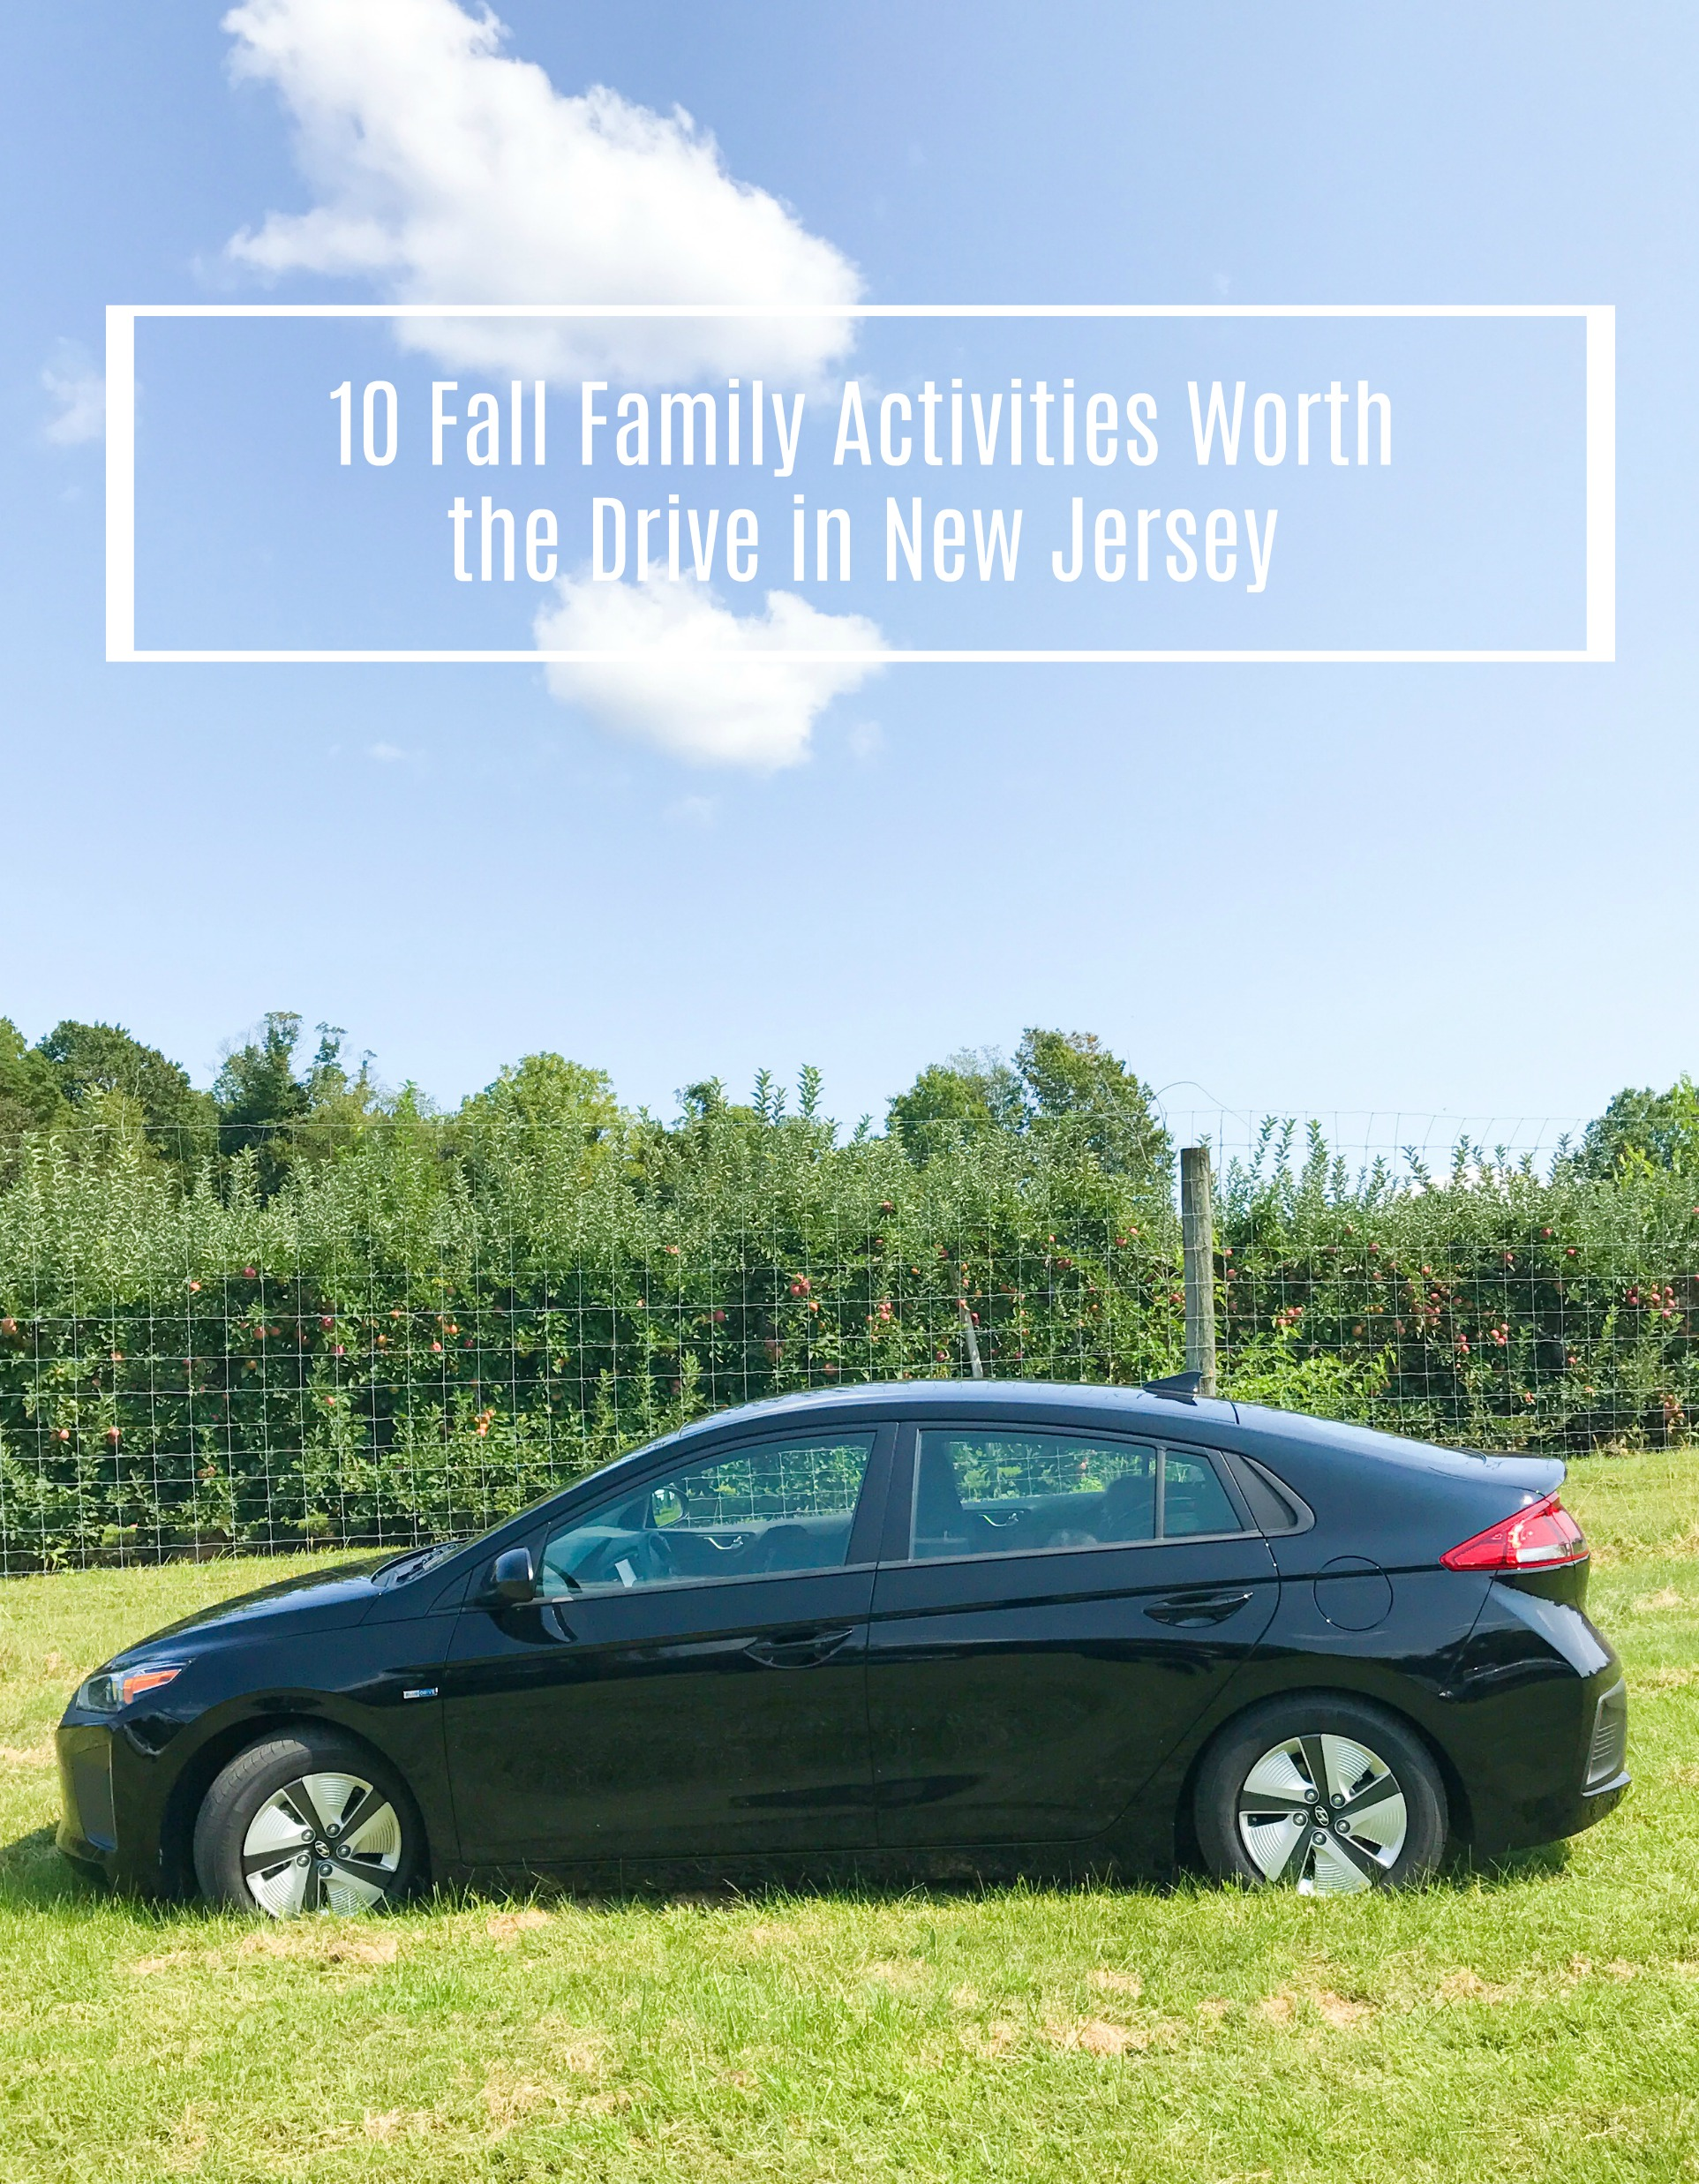 10 Fall Family Activities Worth the Drive in New Jersey